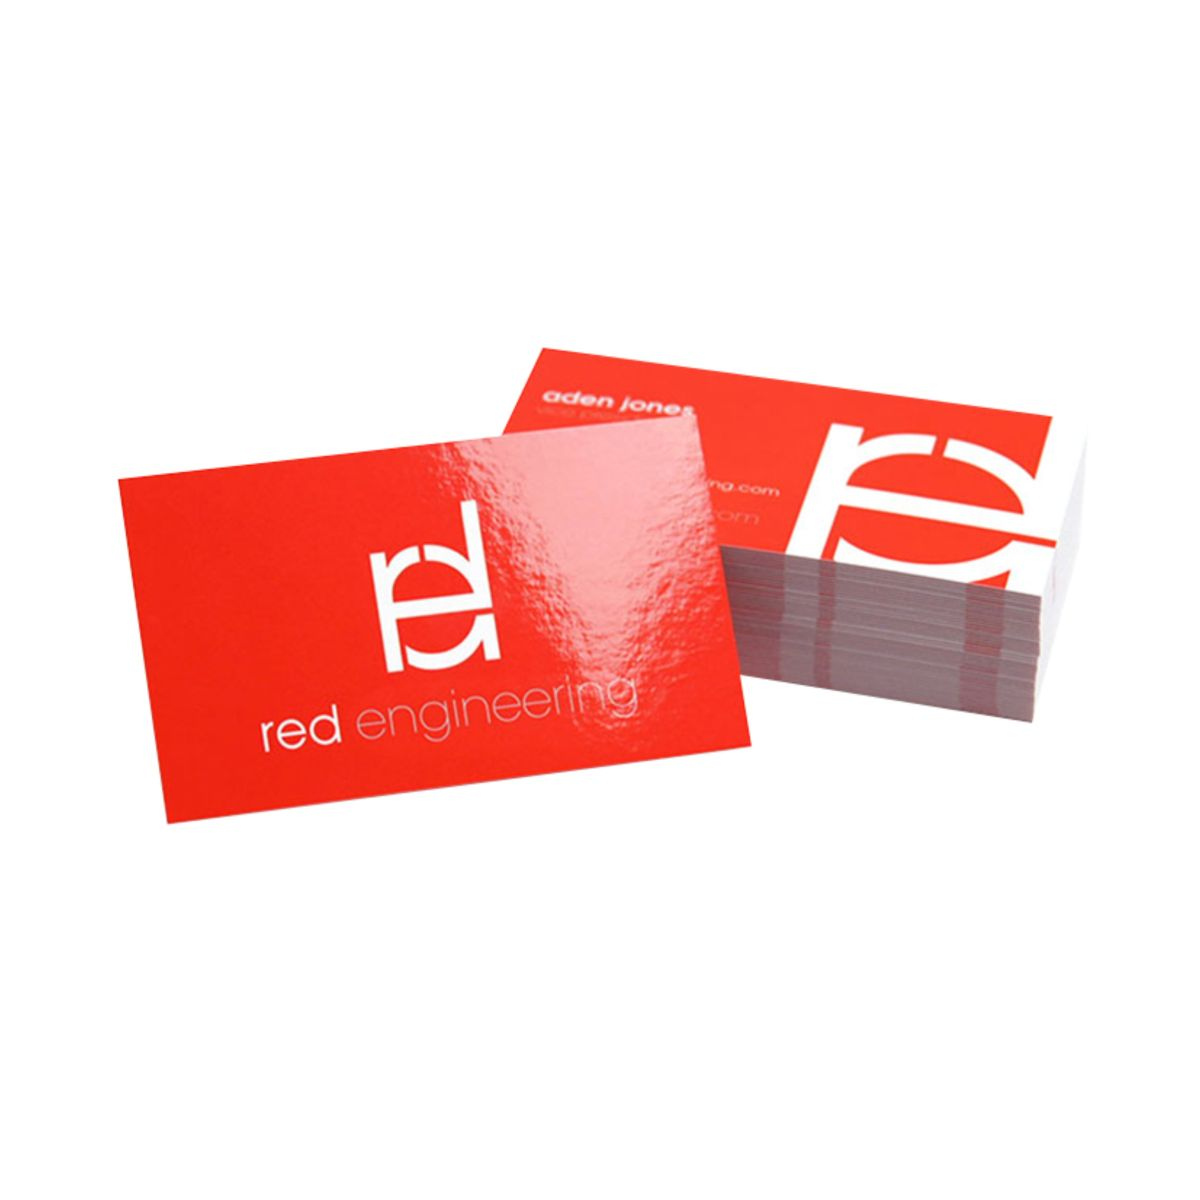 Glossy uv coated business cards qualita print colourmoves